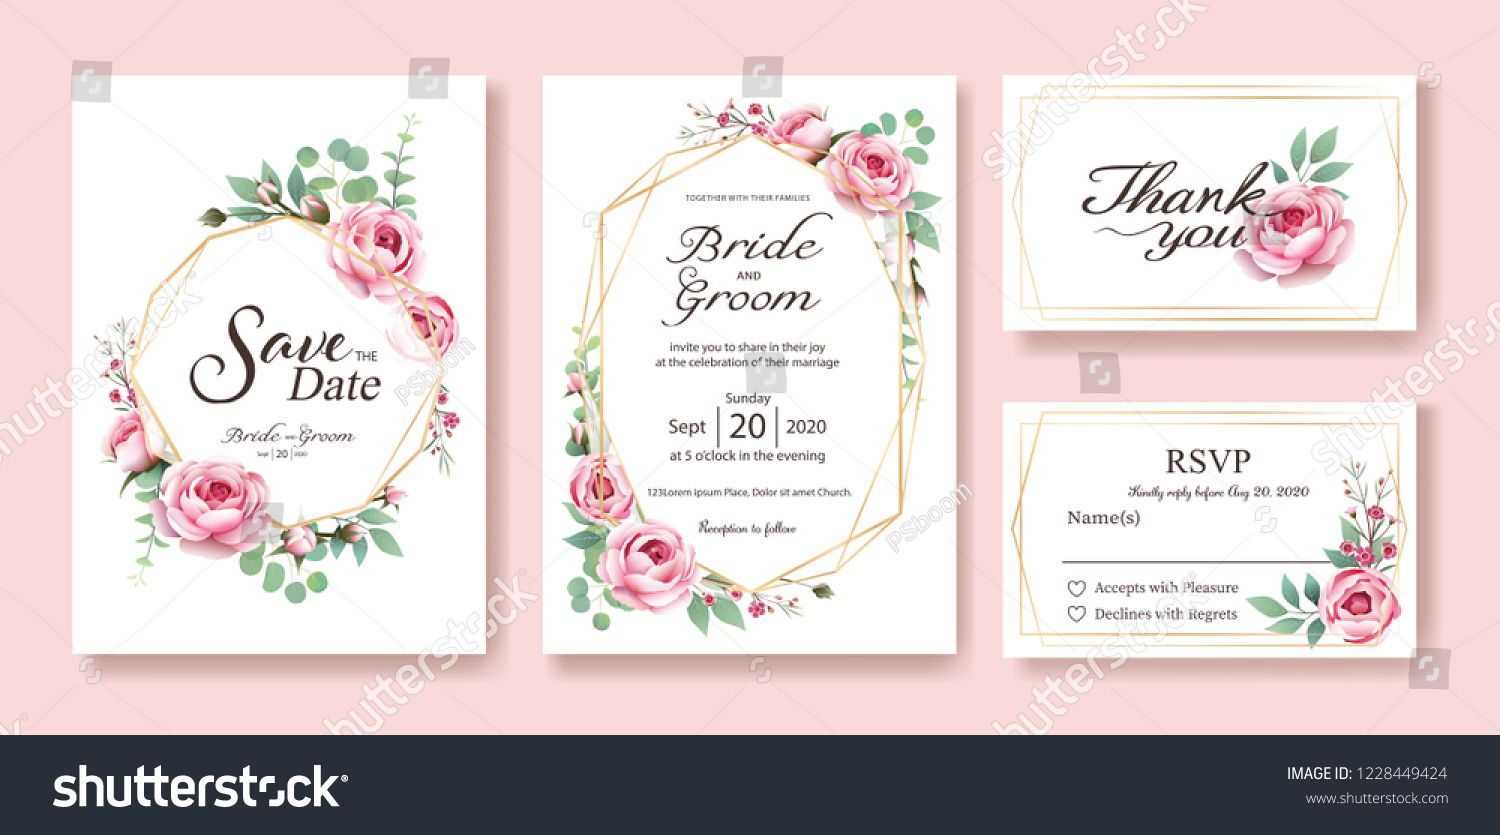 Floral Wedding Invitation Save The Date Thank You Rsvp Card